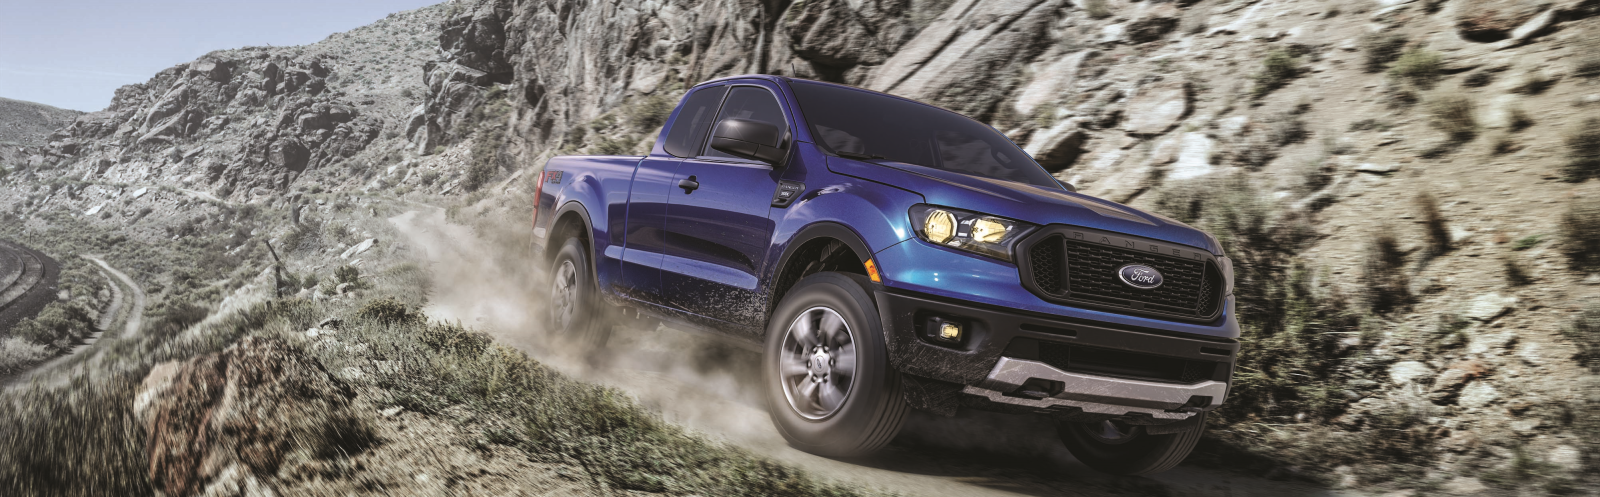 2019 Ford Ranger driving down mountain